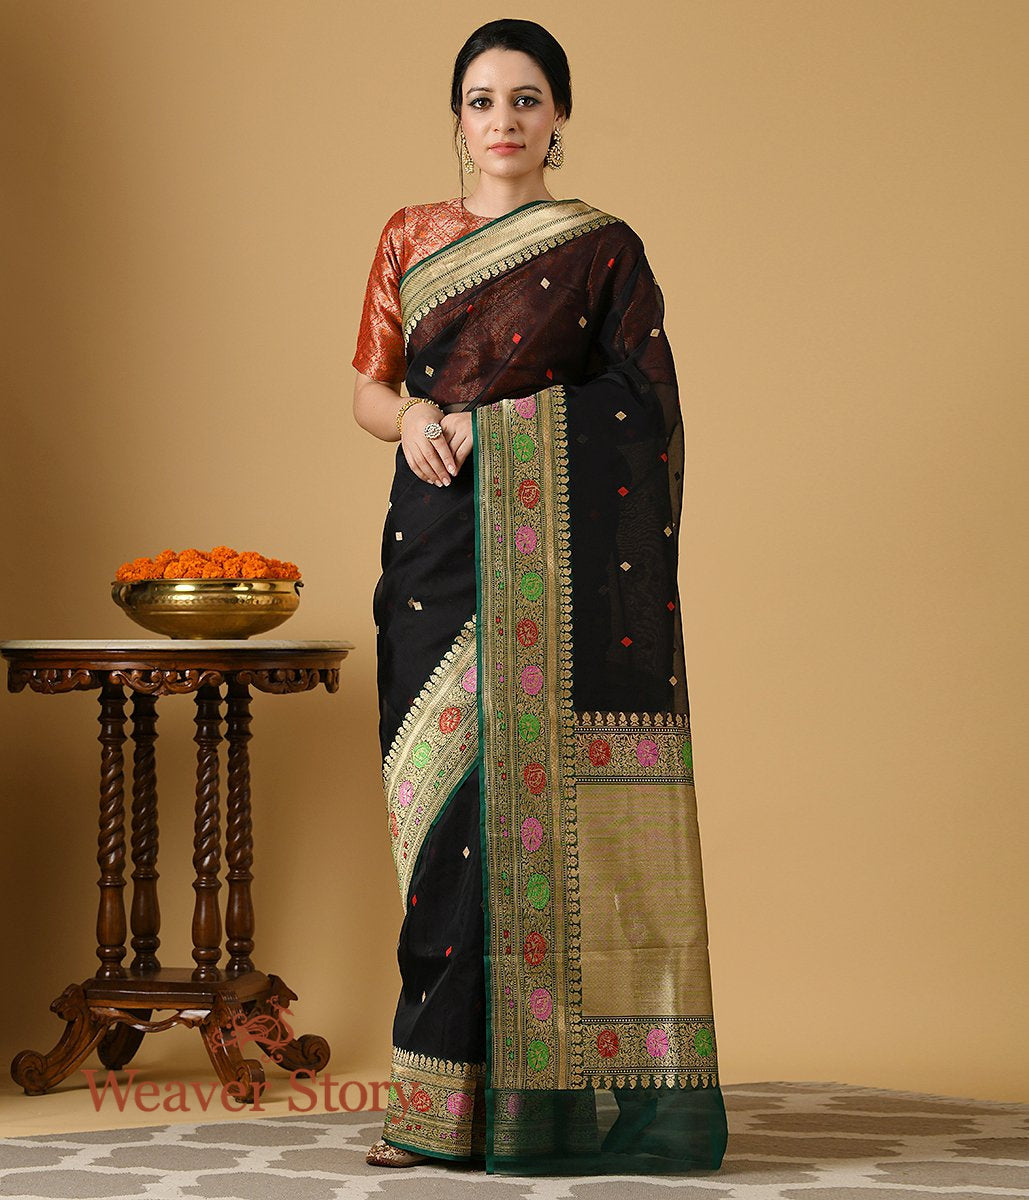 Handwoven Black and Green Meenakari Border Organza Saree